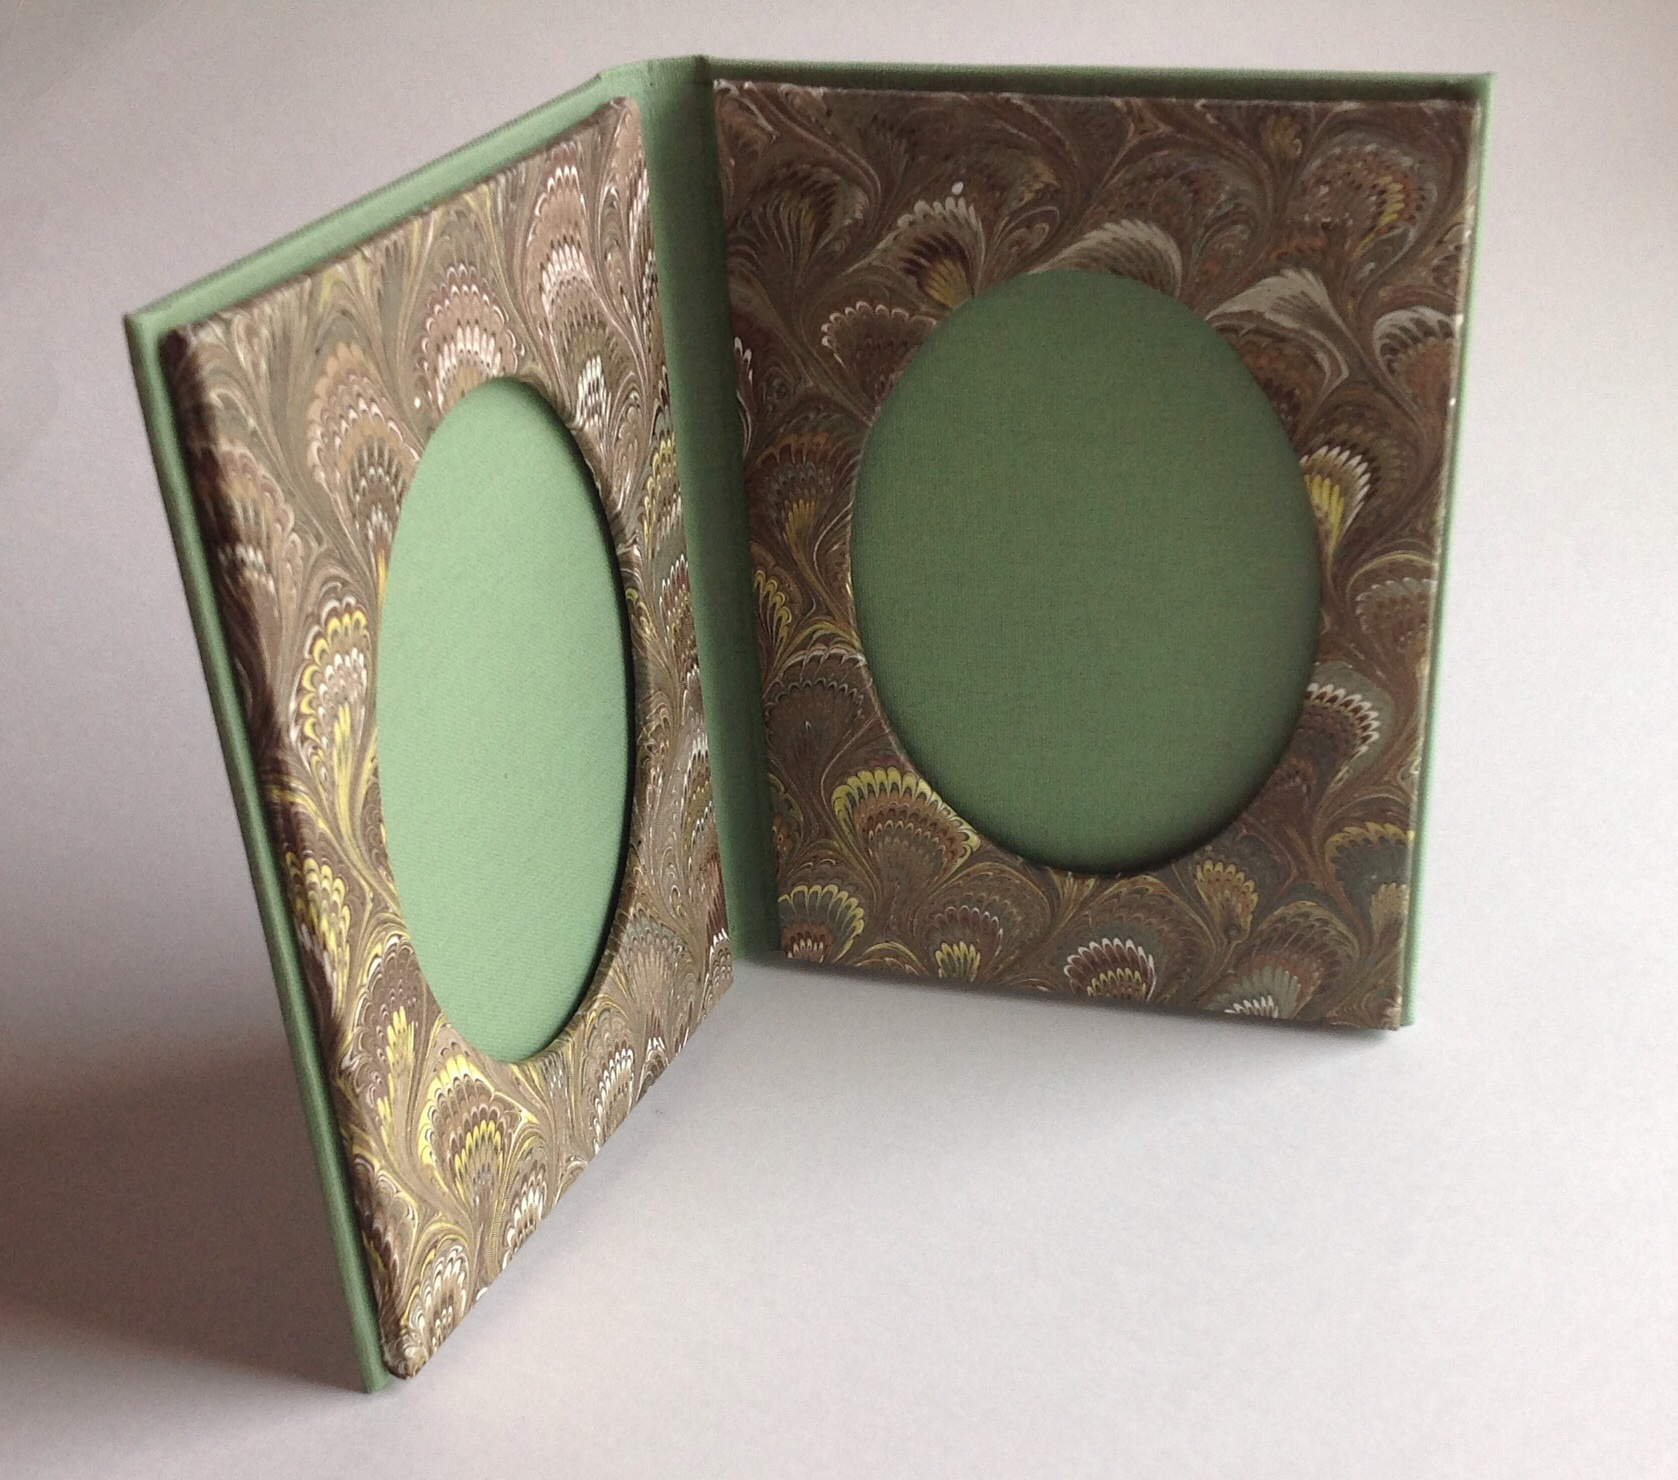 book style frame